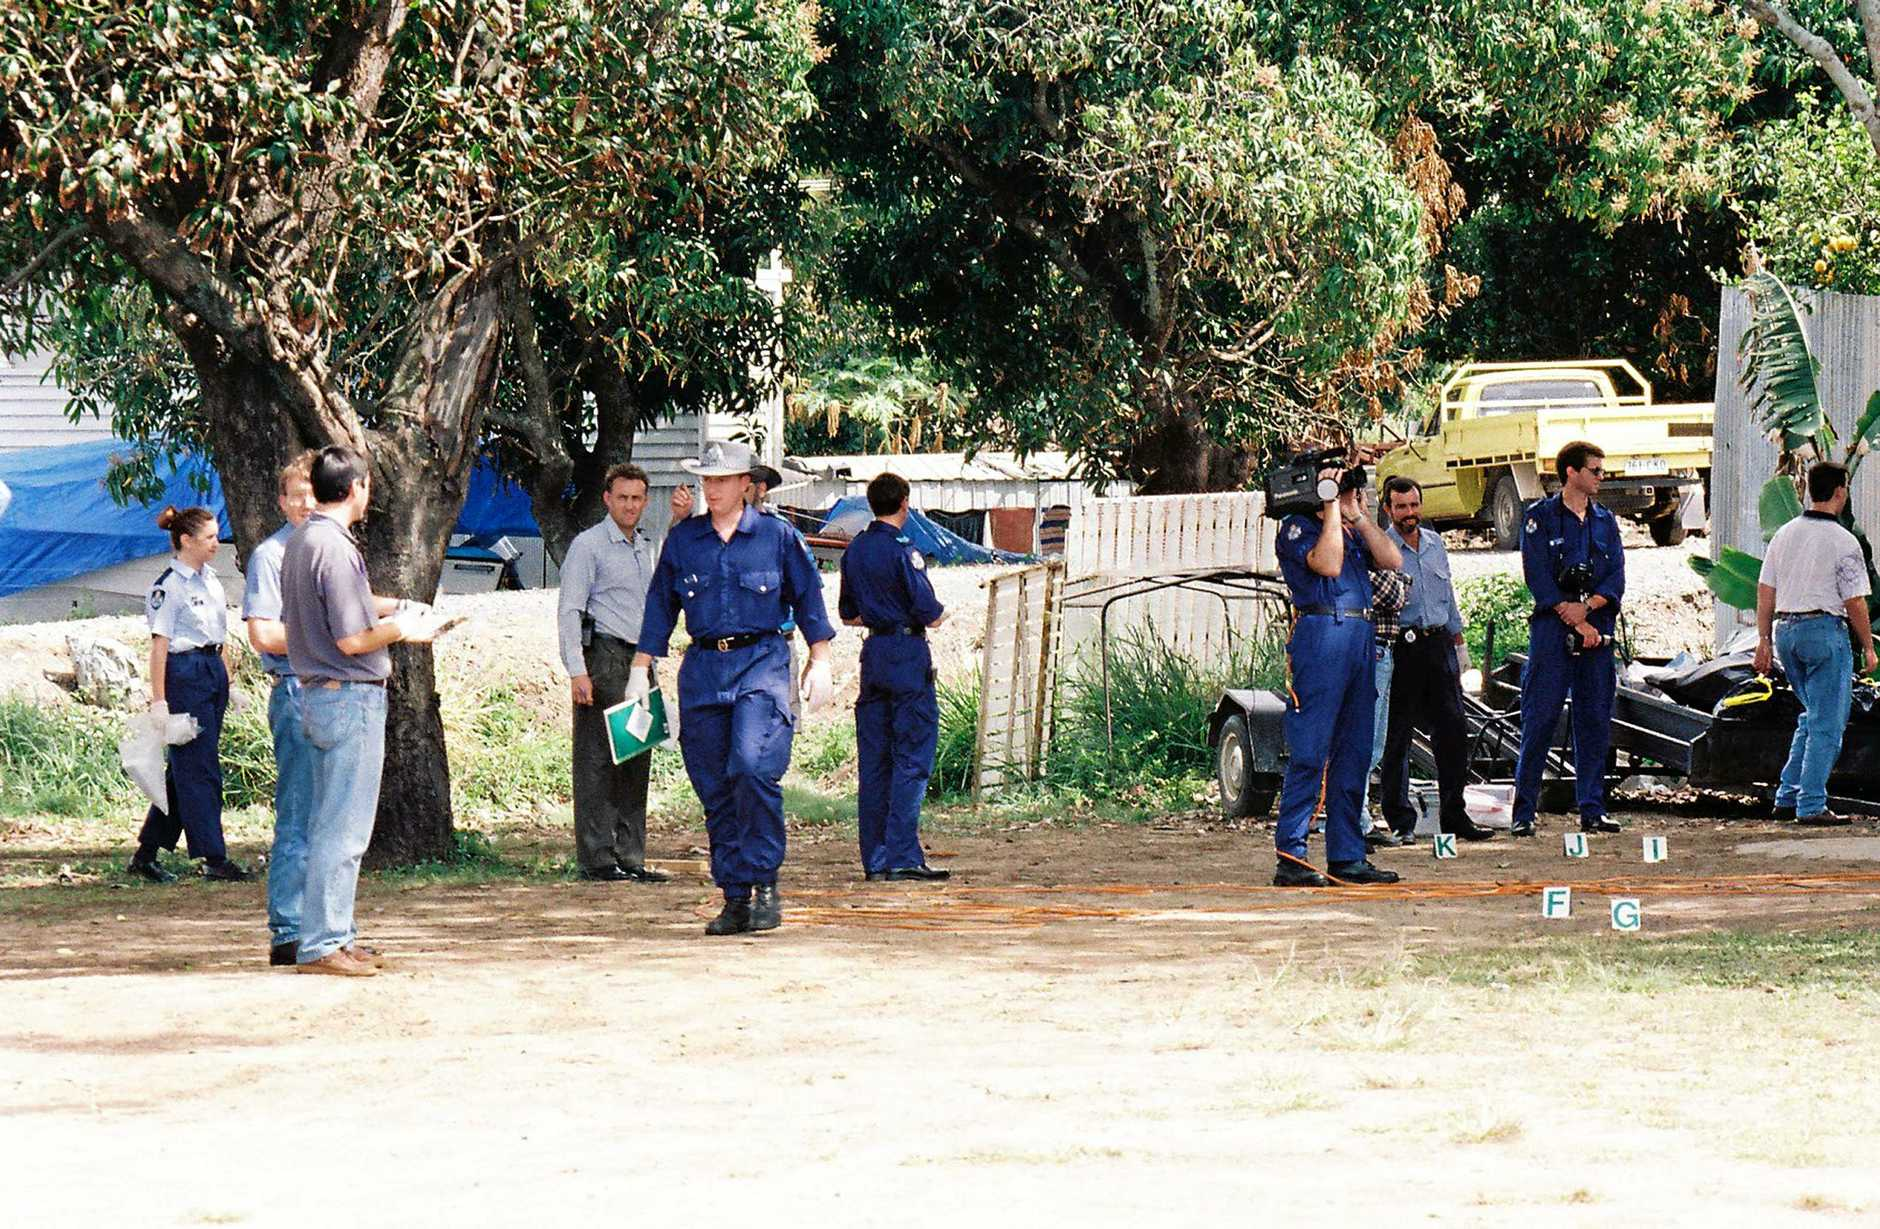 Police officers investigate the scene of a shoot-out between bikies at Cremorne on August 31st, 1997.